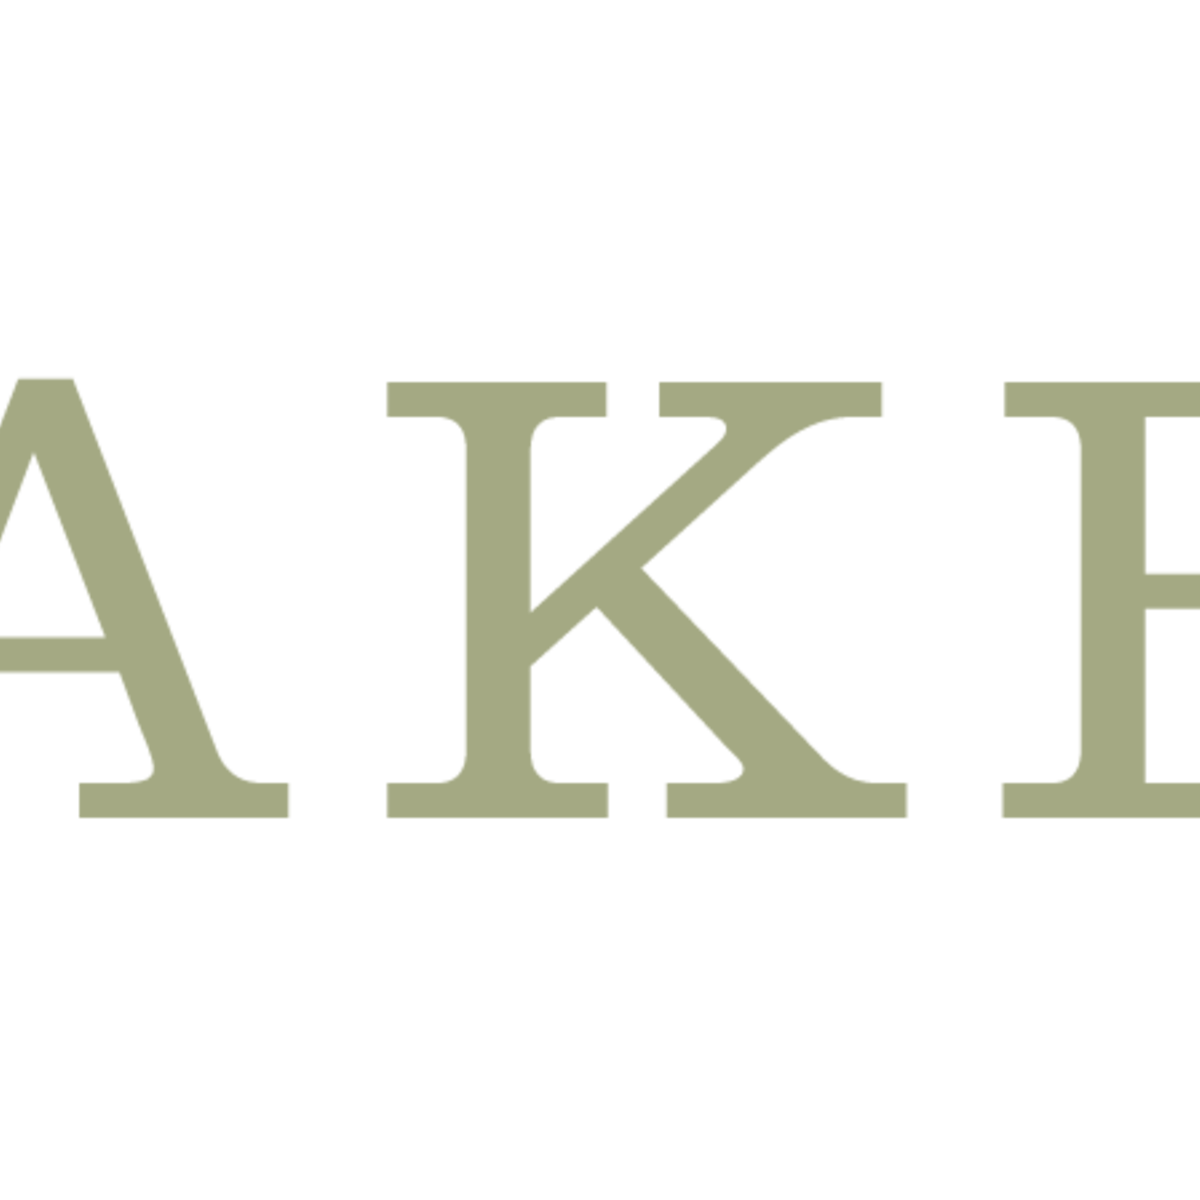 Contact Us At The Lakes Bellevue